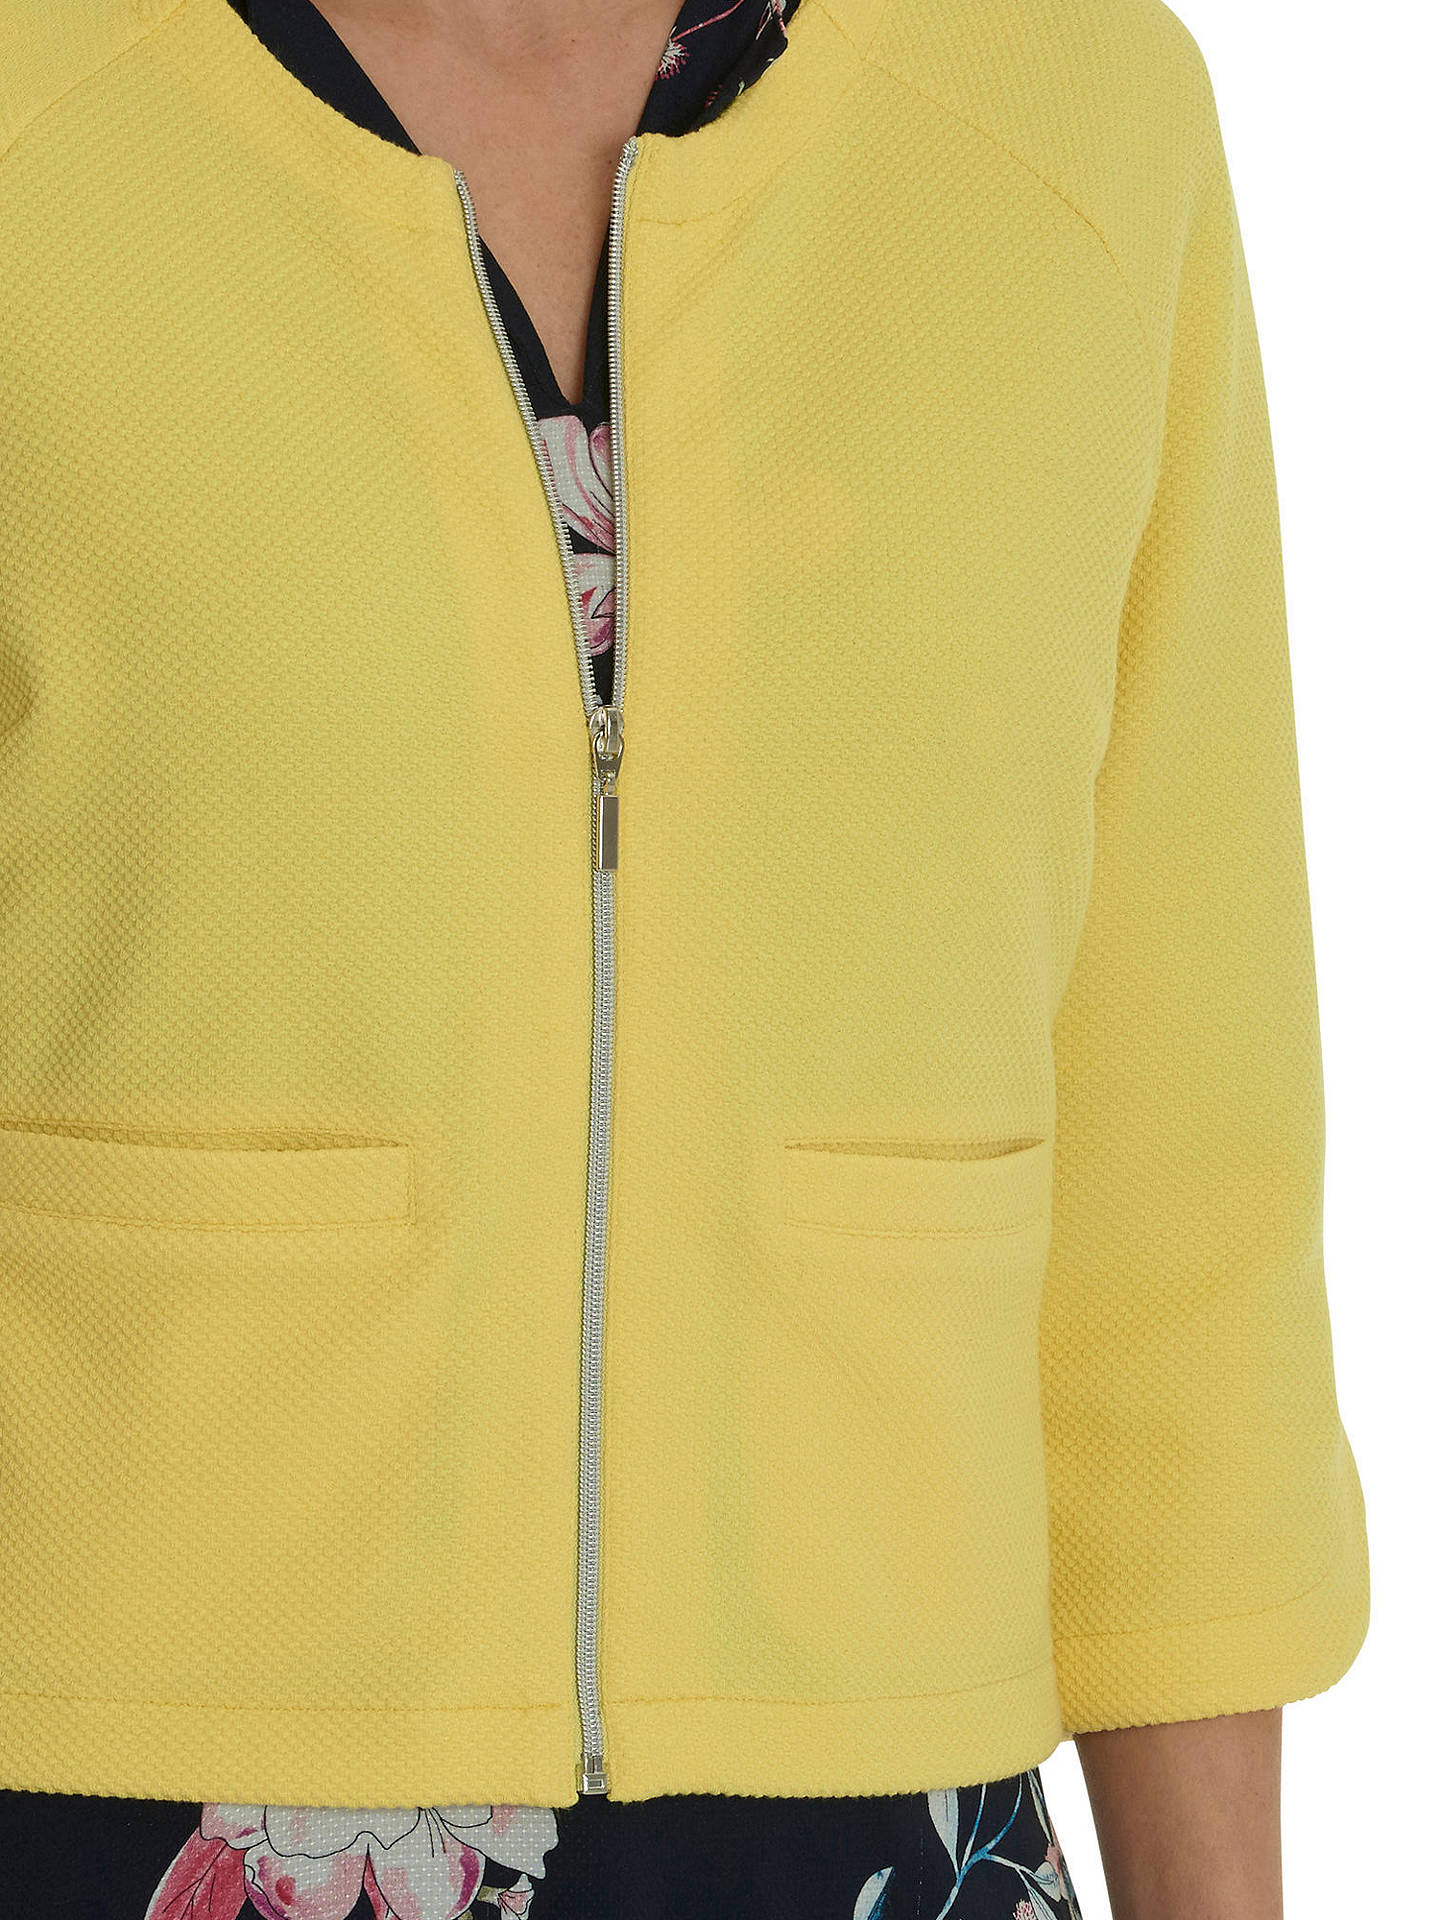 BuyBetty Barclay Textured Knit Jacket, Summer Yellow, 10 Online at johnlewis.com